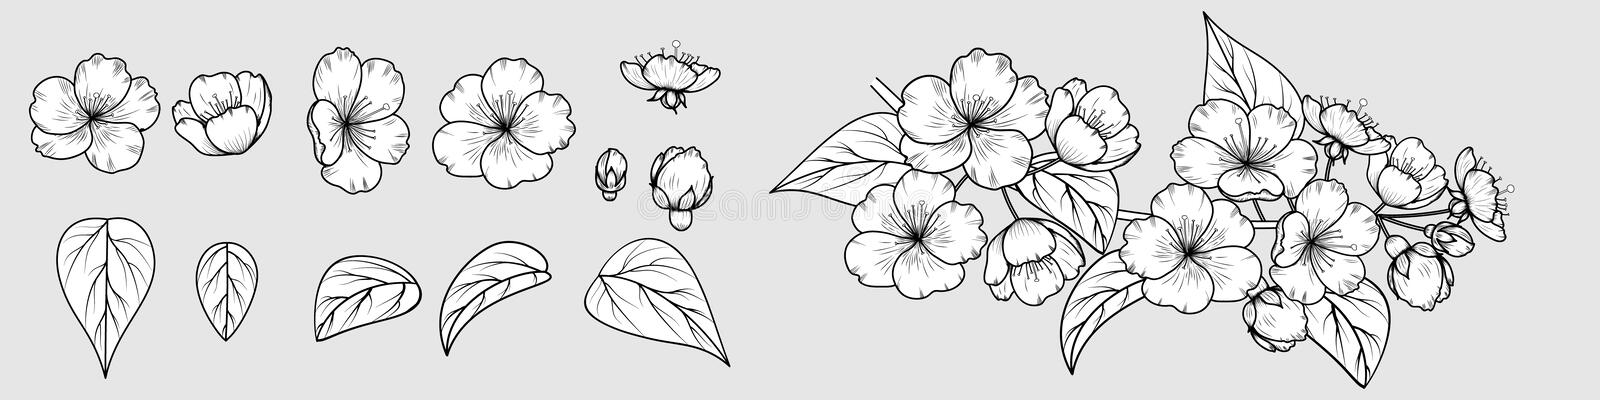 Vector image of a hand-drawn cherry blossom branch. stock photography